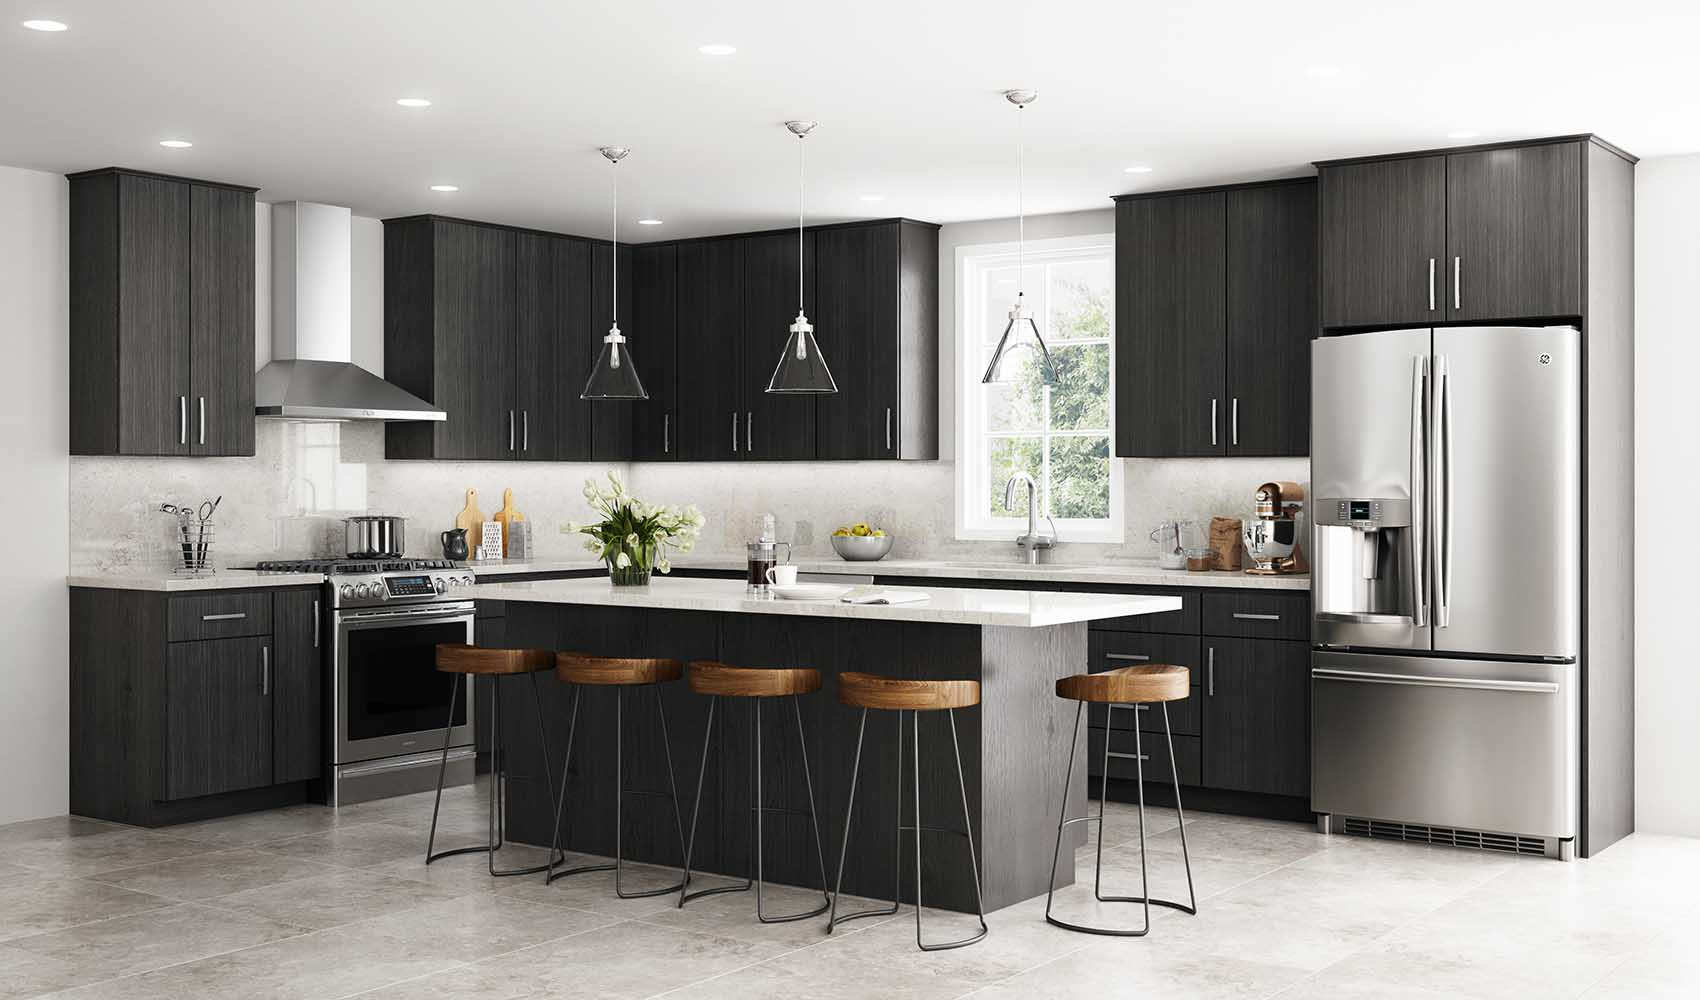 [Kitchen Cabinets] Styles, Colors, & Features   Heartland Design Iowa